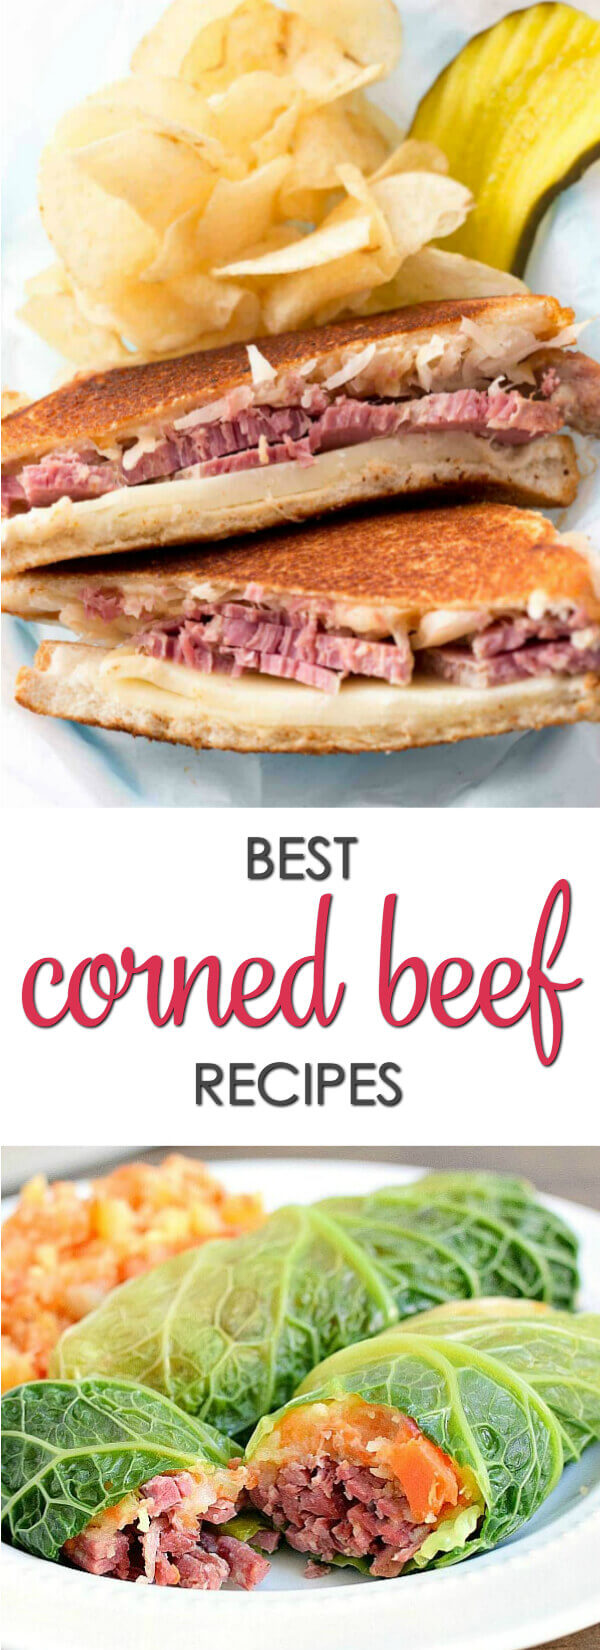 More than 40 of the best Corned Beef recipes - including baked Corned Beef recipes, and amazing corned beef crock pot recipe.These are some of my favorite easy St Patrick Day recipes.  #itisakeeper #recipes #stpatricksday